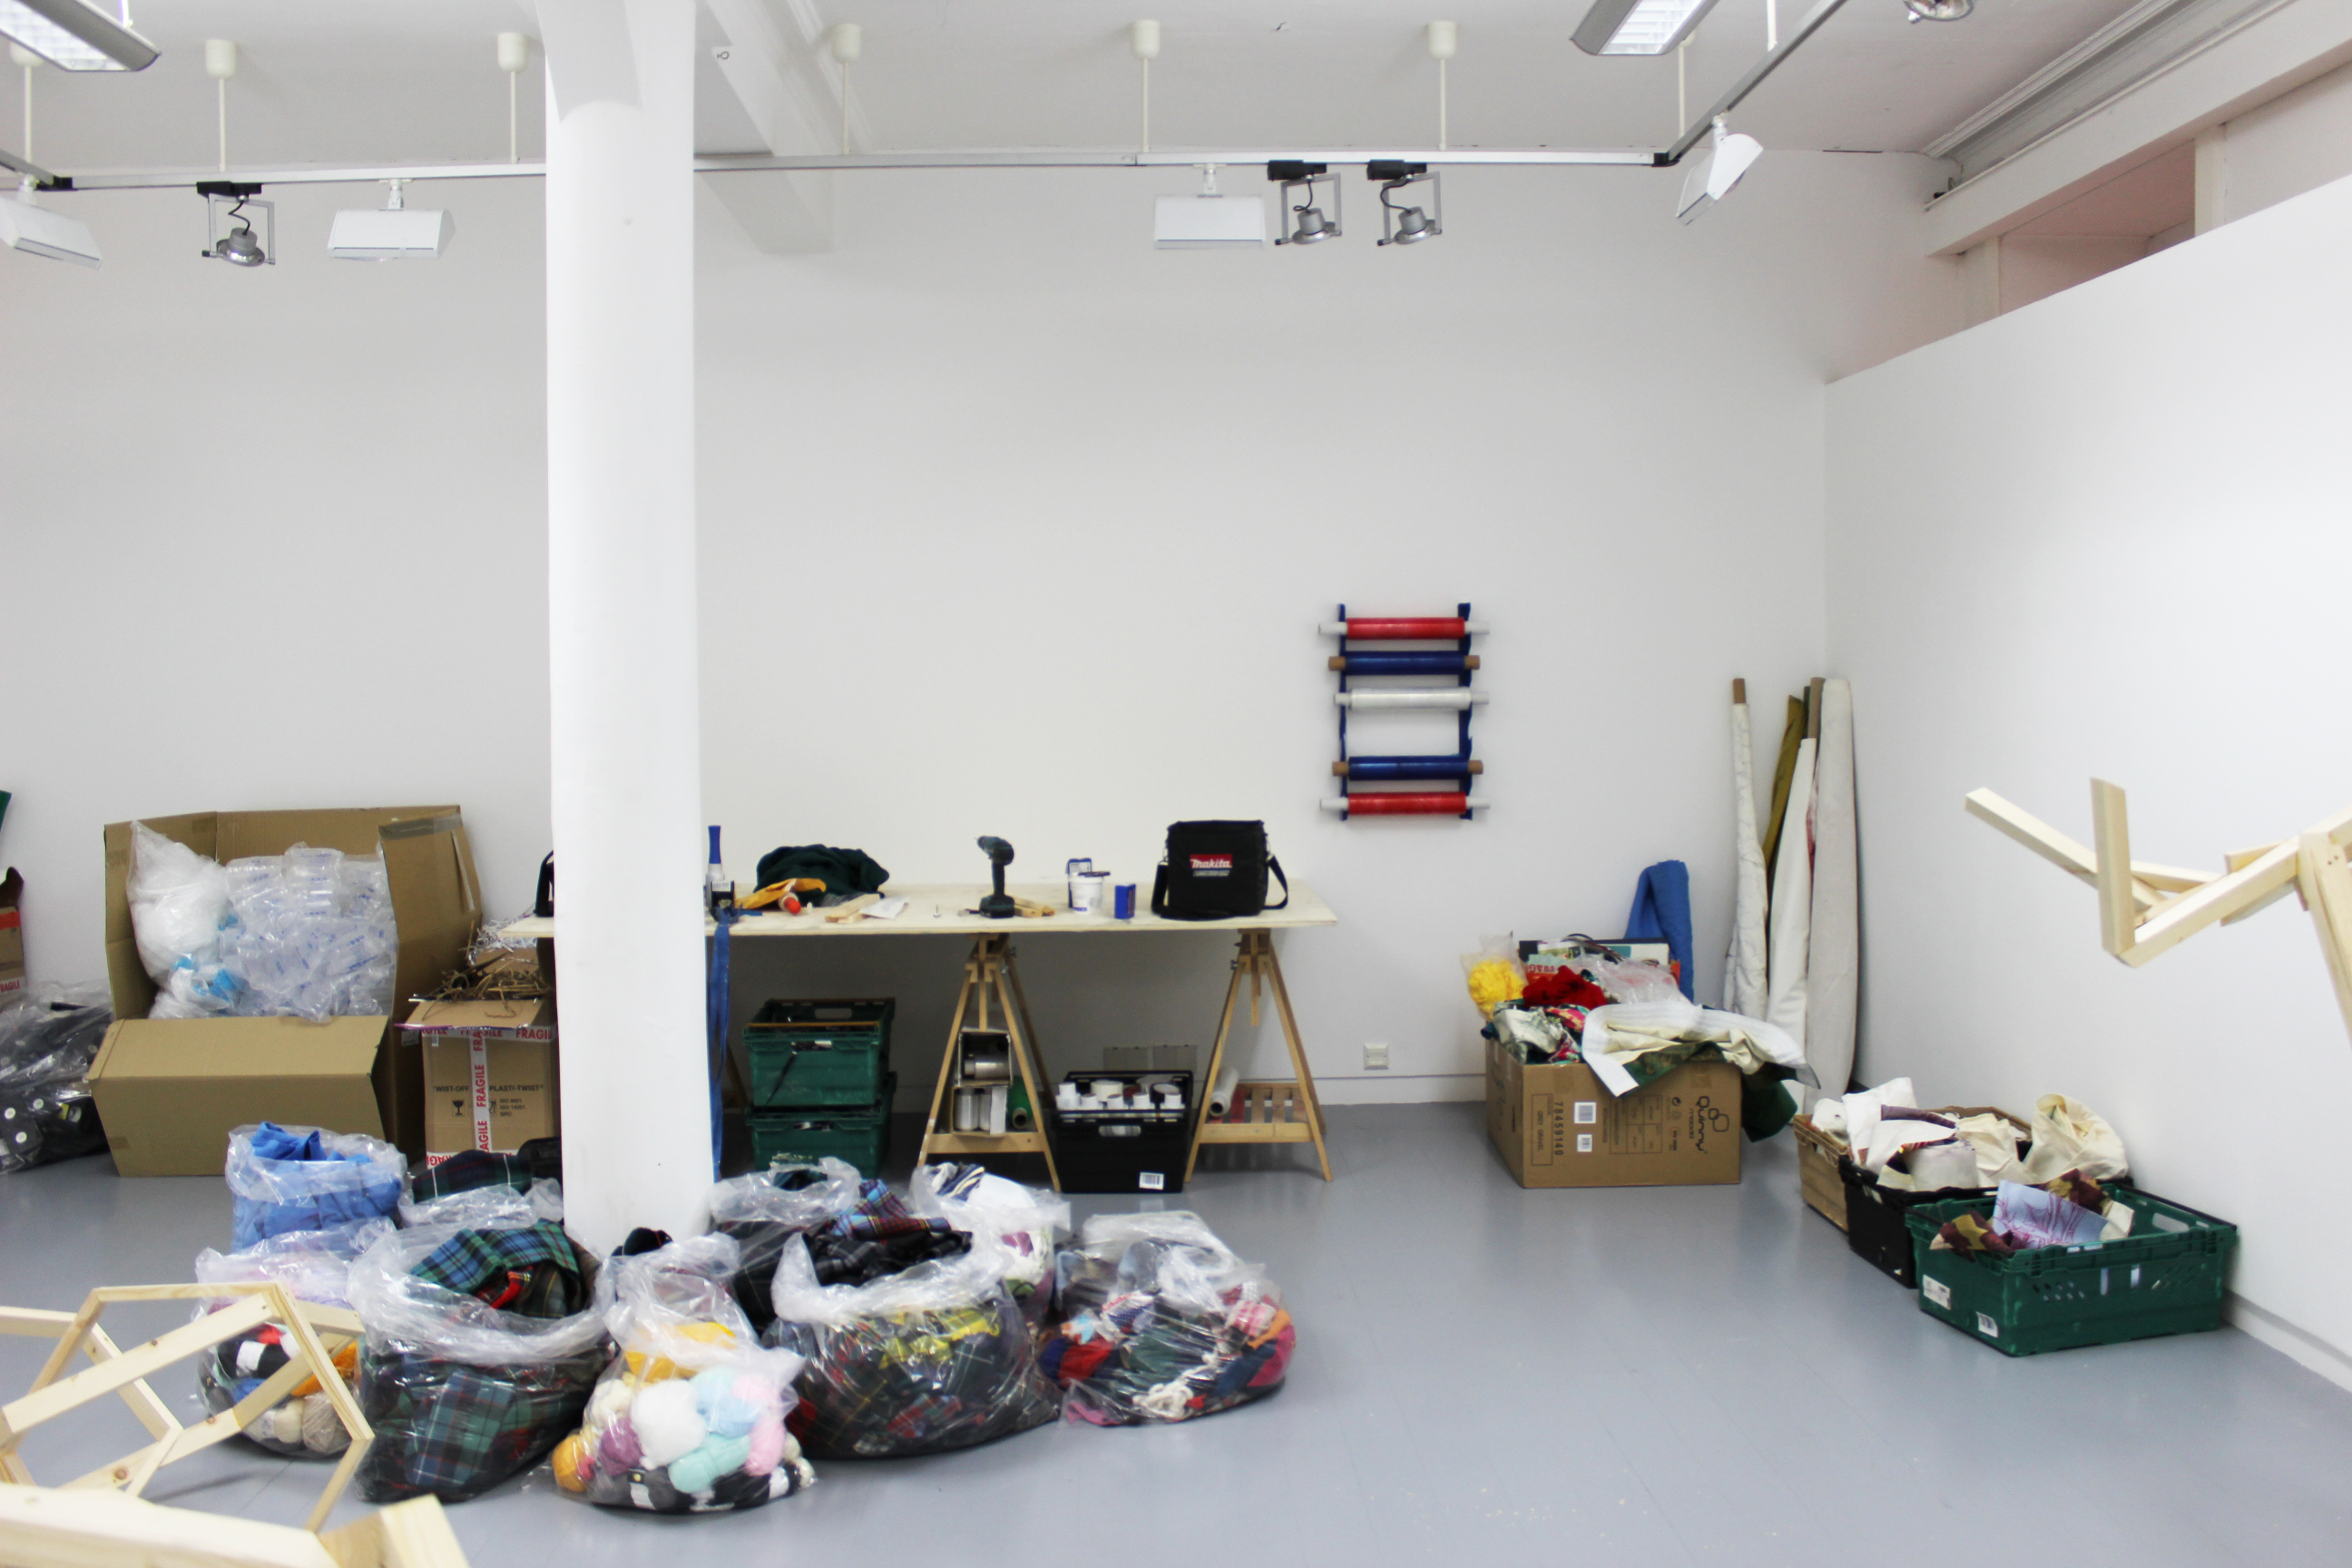 Thank you for your donations towards Nnena Kalu's installation